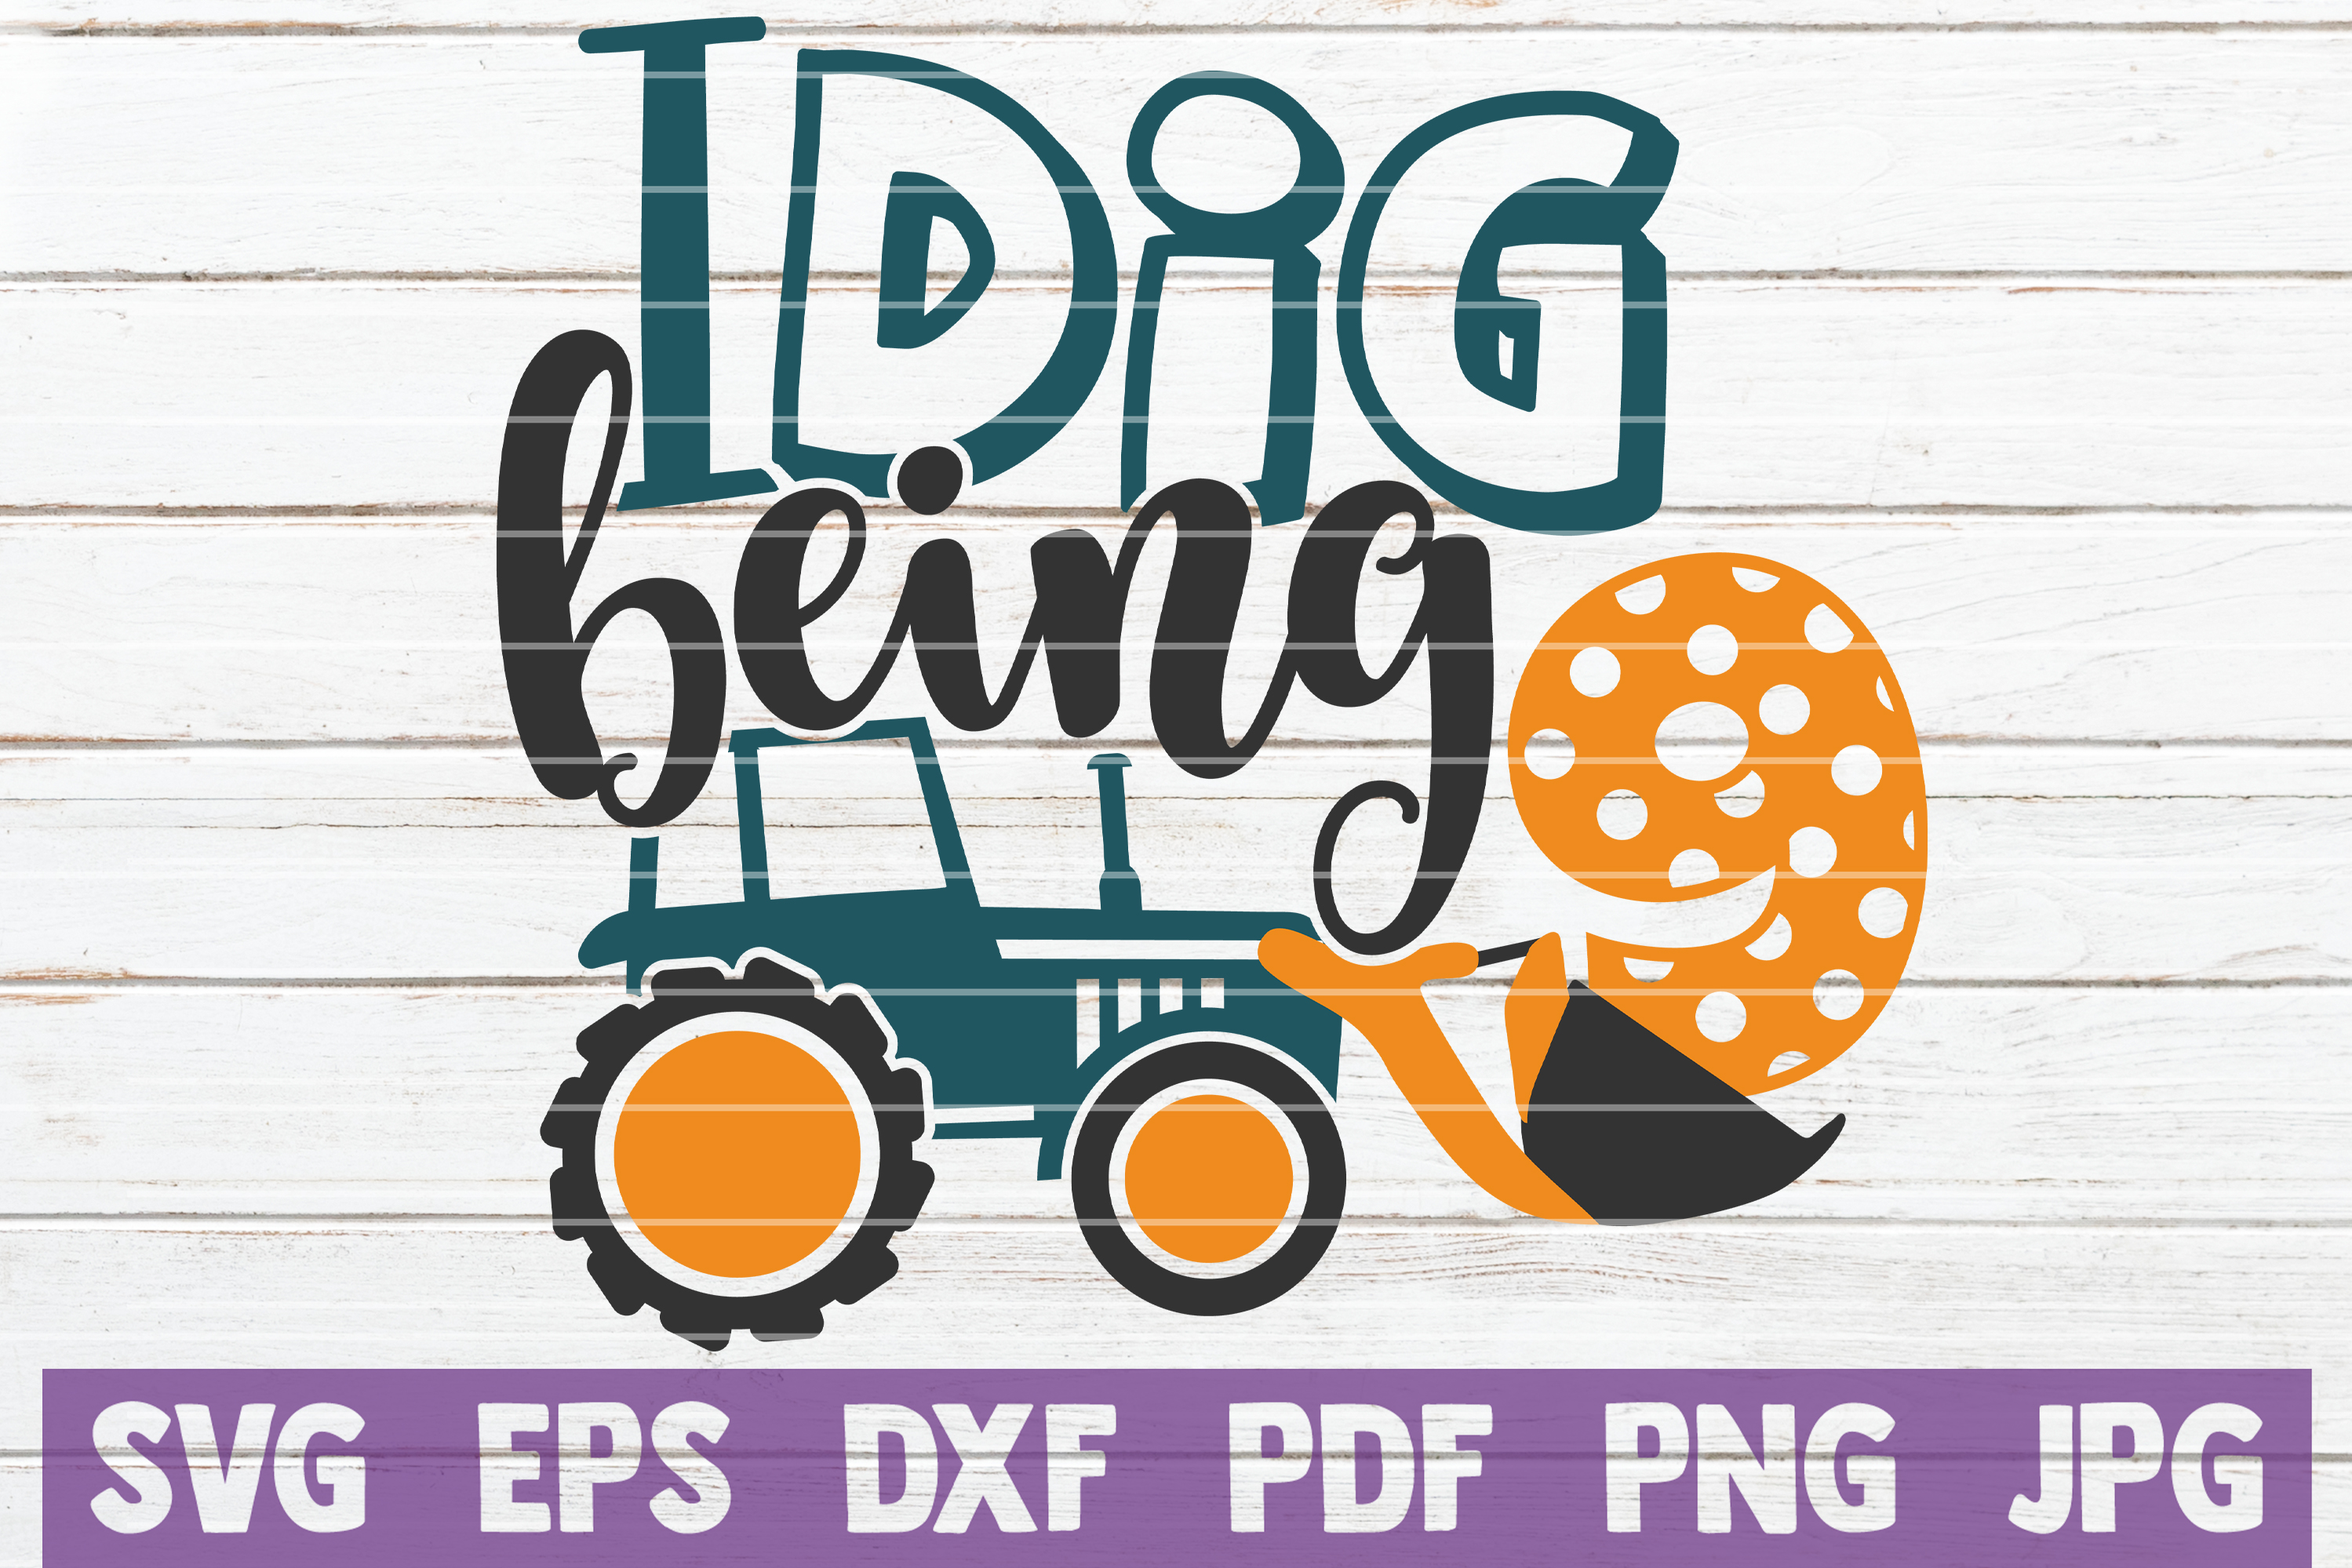 Pendant Laser Cut Svg Free Svg Cut Files Create Your Diy Projects Using Your Cricut Explore Silhouette And More The Free Cut Files Include Svg Dxf Eps And Png Files